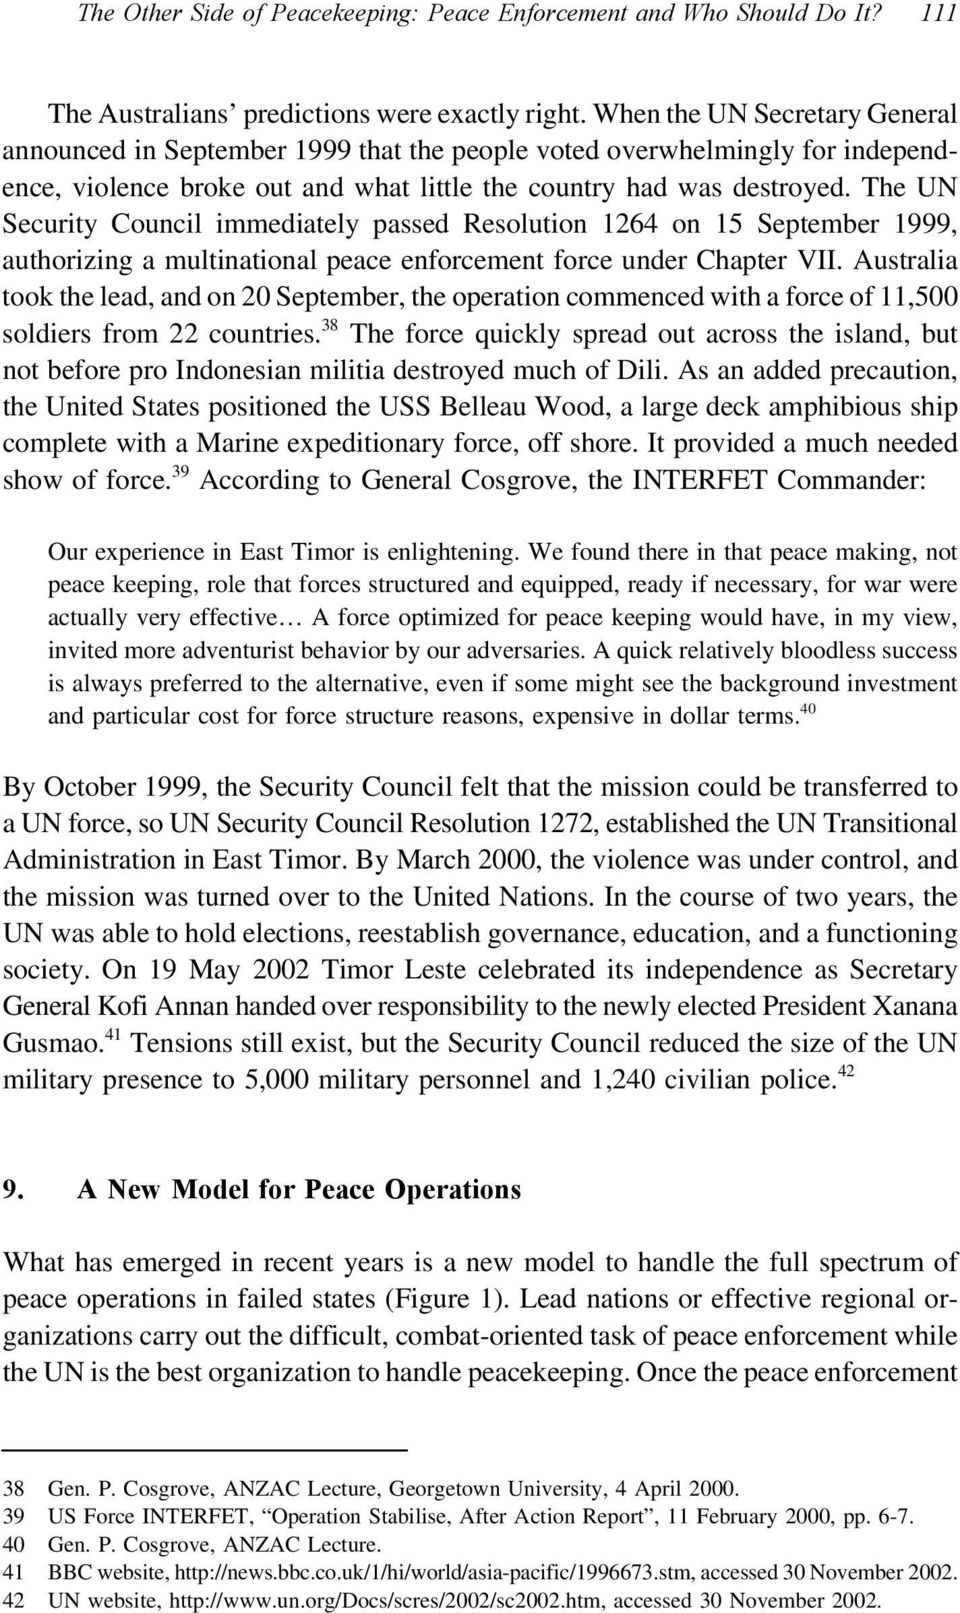 The UN Security Council immediately passed Resolution 1264 on 15 September 1999, authorizing a multinational peace enforcement force under Chapter VII.